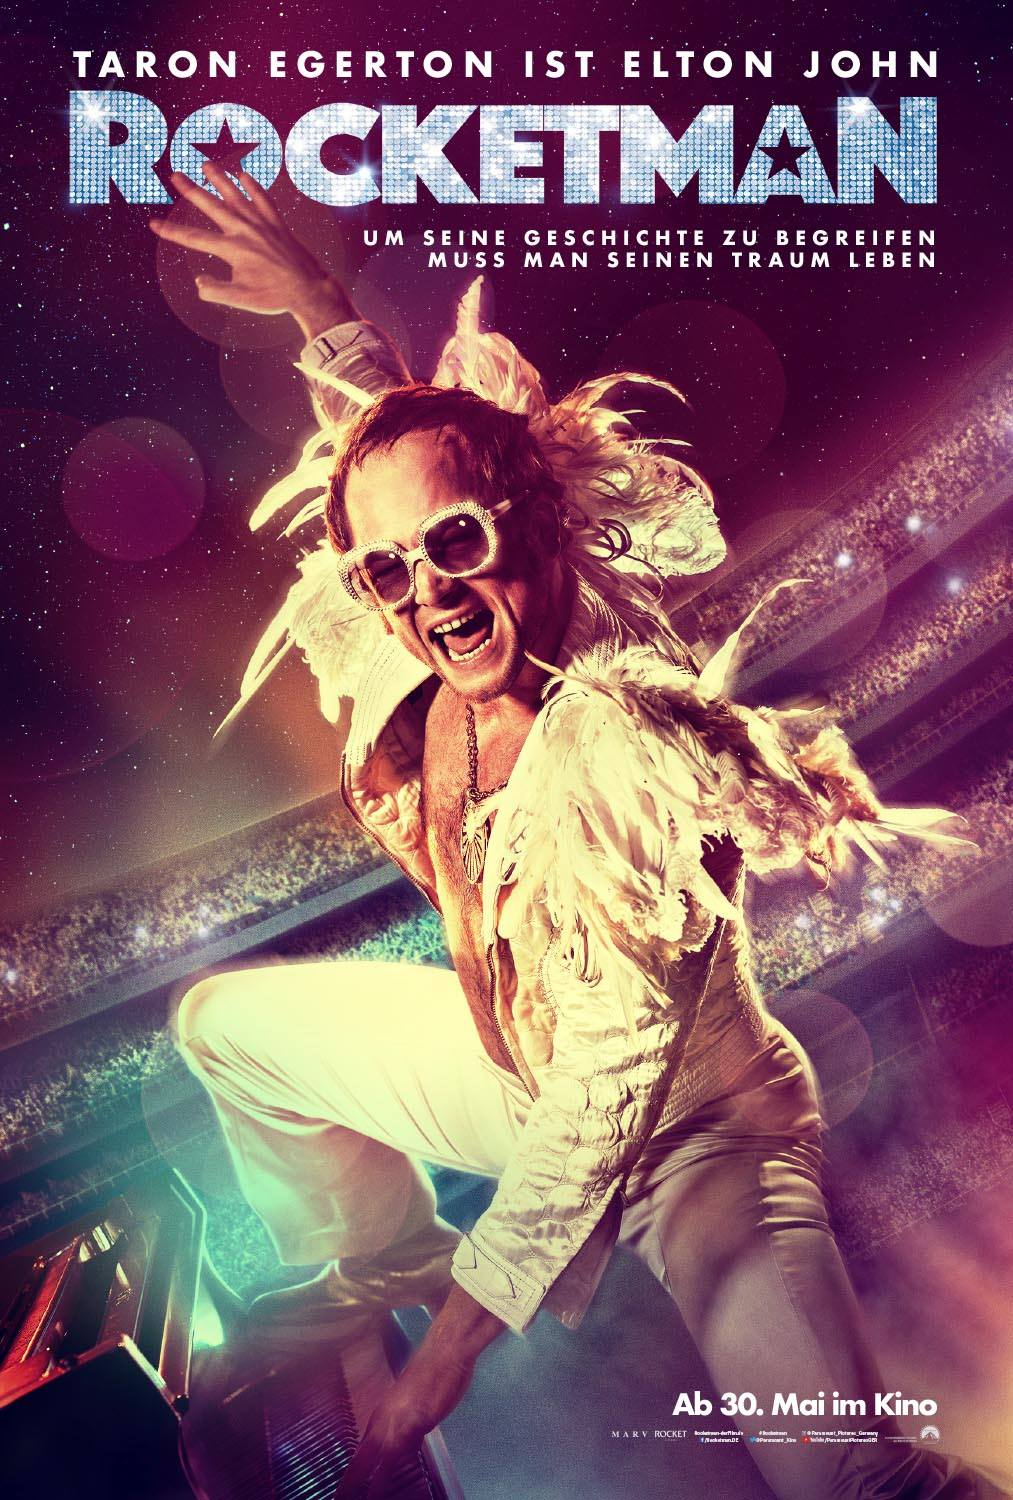 Ferienhaus Mit Pool Willingen Rocketman Film 2019 Trailer Kritik Kino De